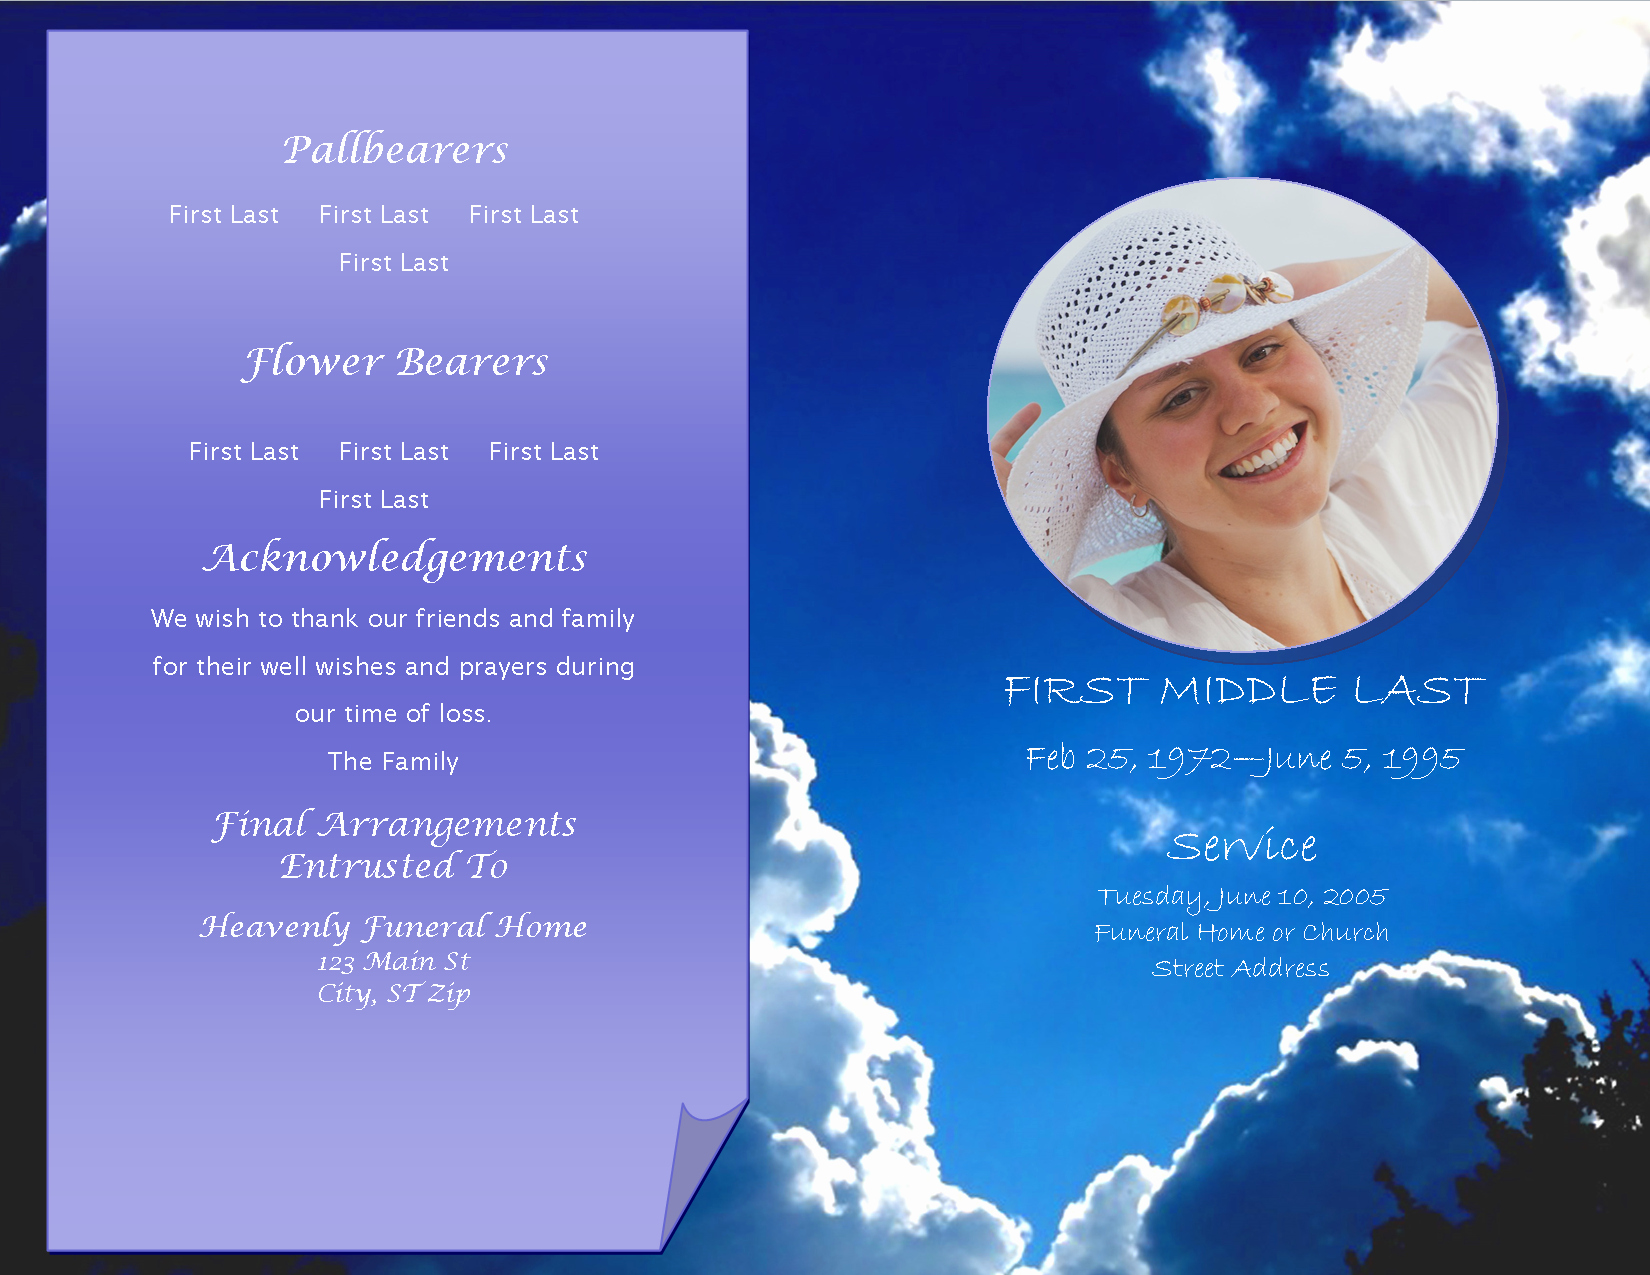 Celebration Of Life Program Template Beautiful Lifecycleprints Celebration Of Life & Funeral Program